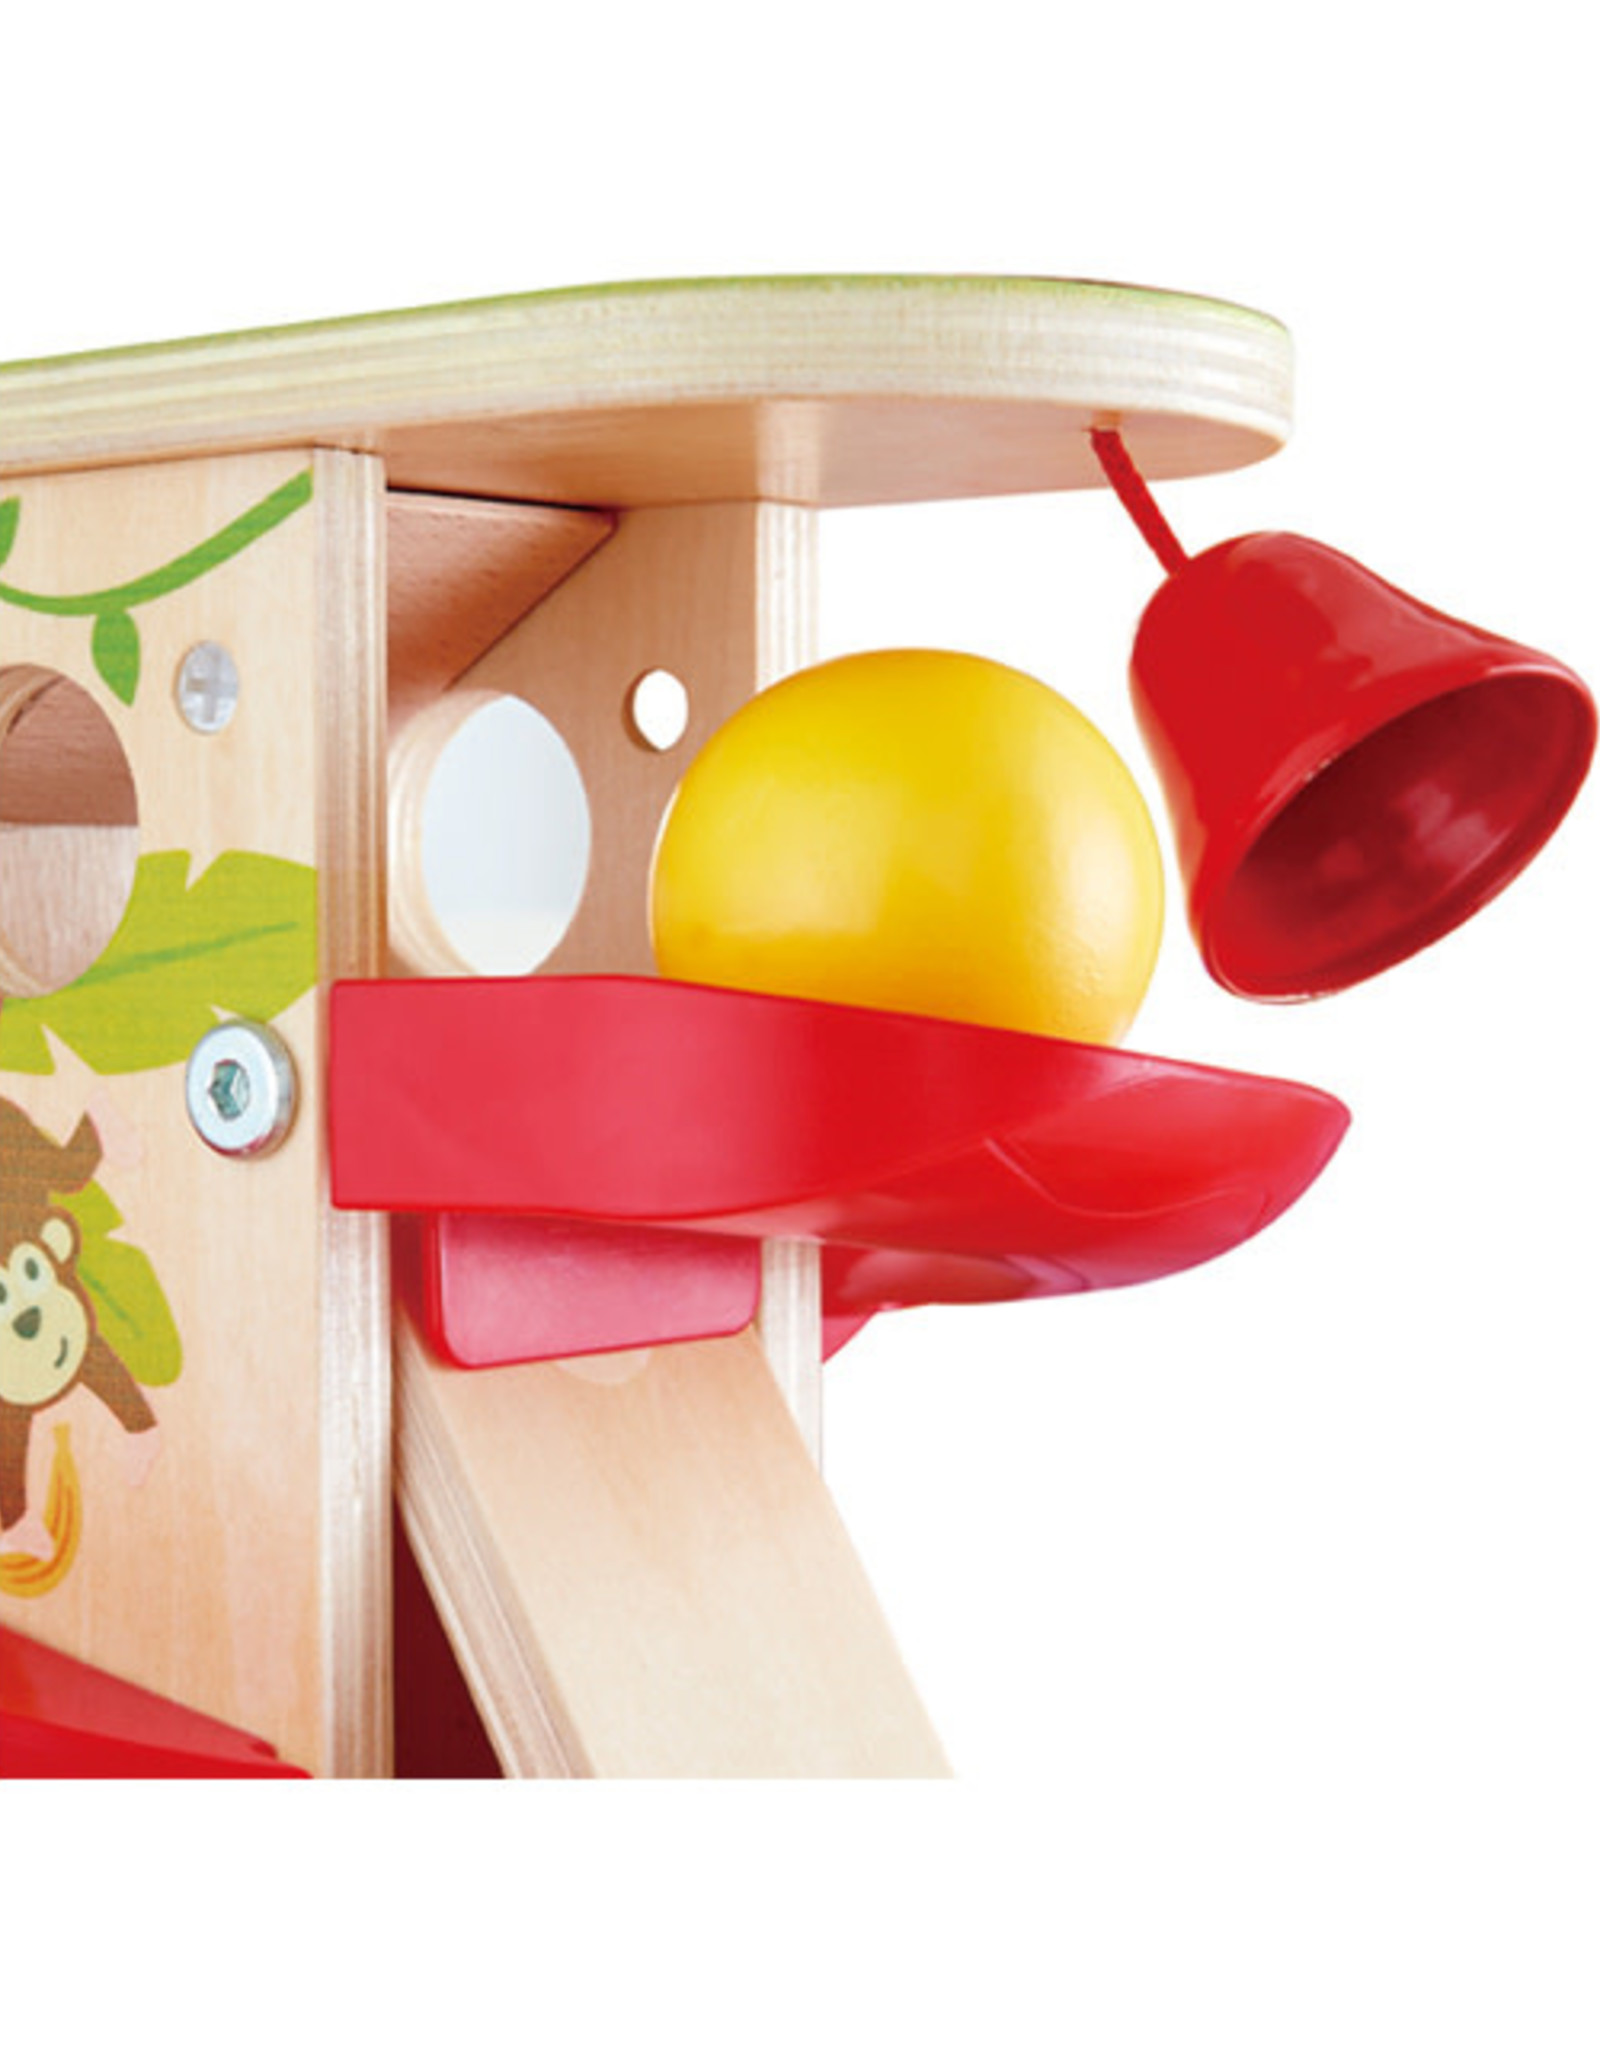 Hape Toys Hape Jungle Press and Slide